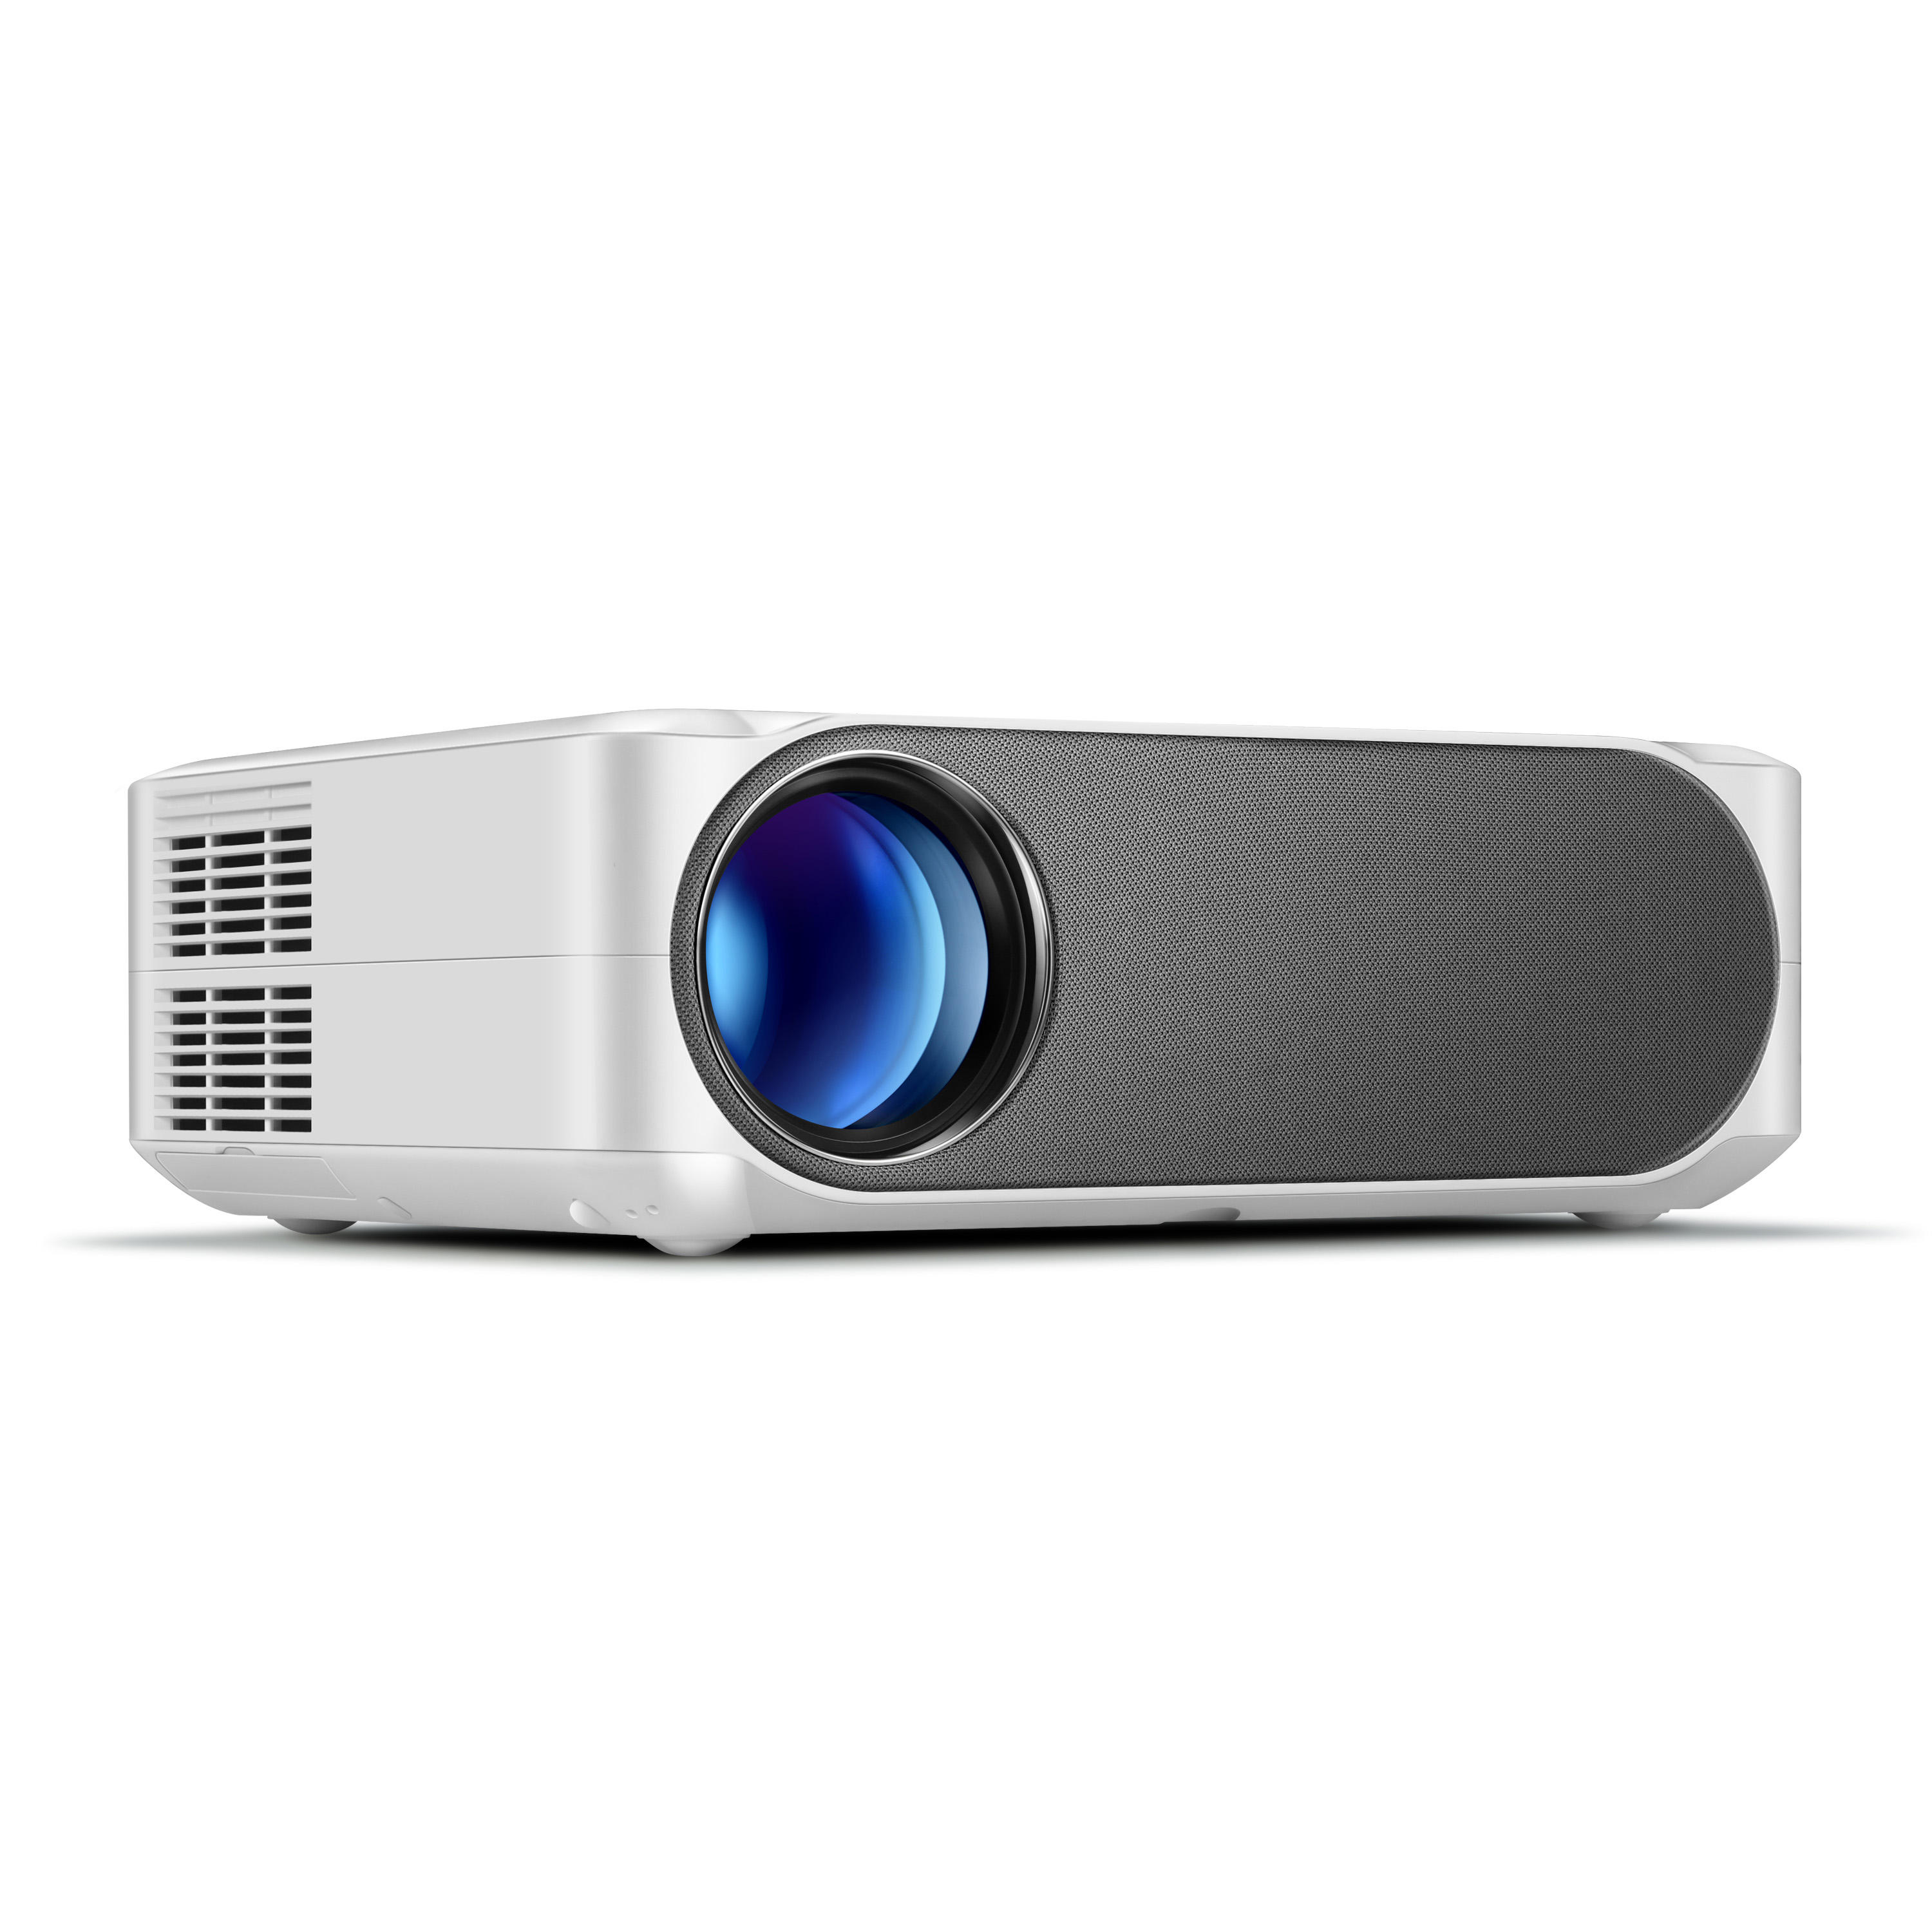 Wholesale AUN AKEY6 Projector Full HD 1080P Resolution 6800 Lumens Built in Multimedia System Video Beamer LED Projector for Home Theater